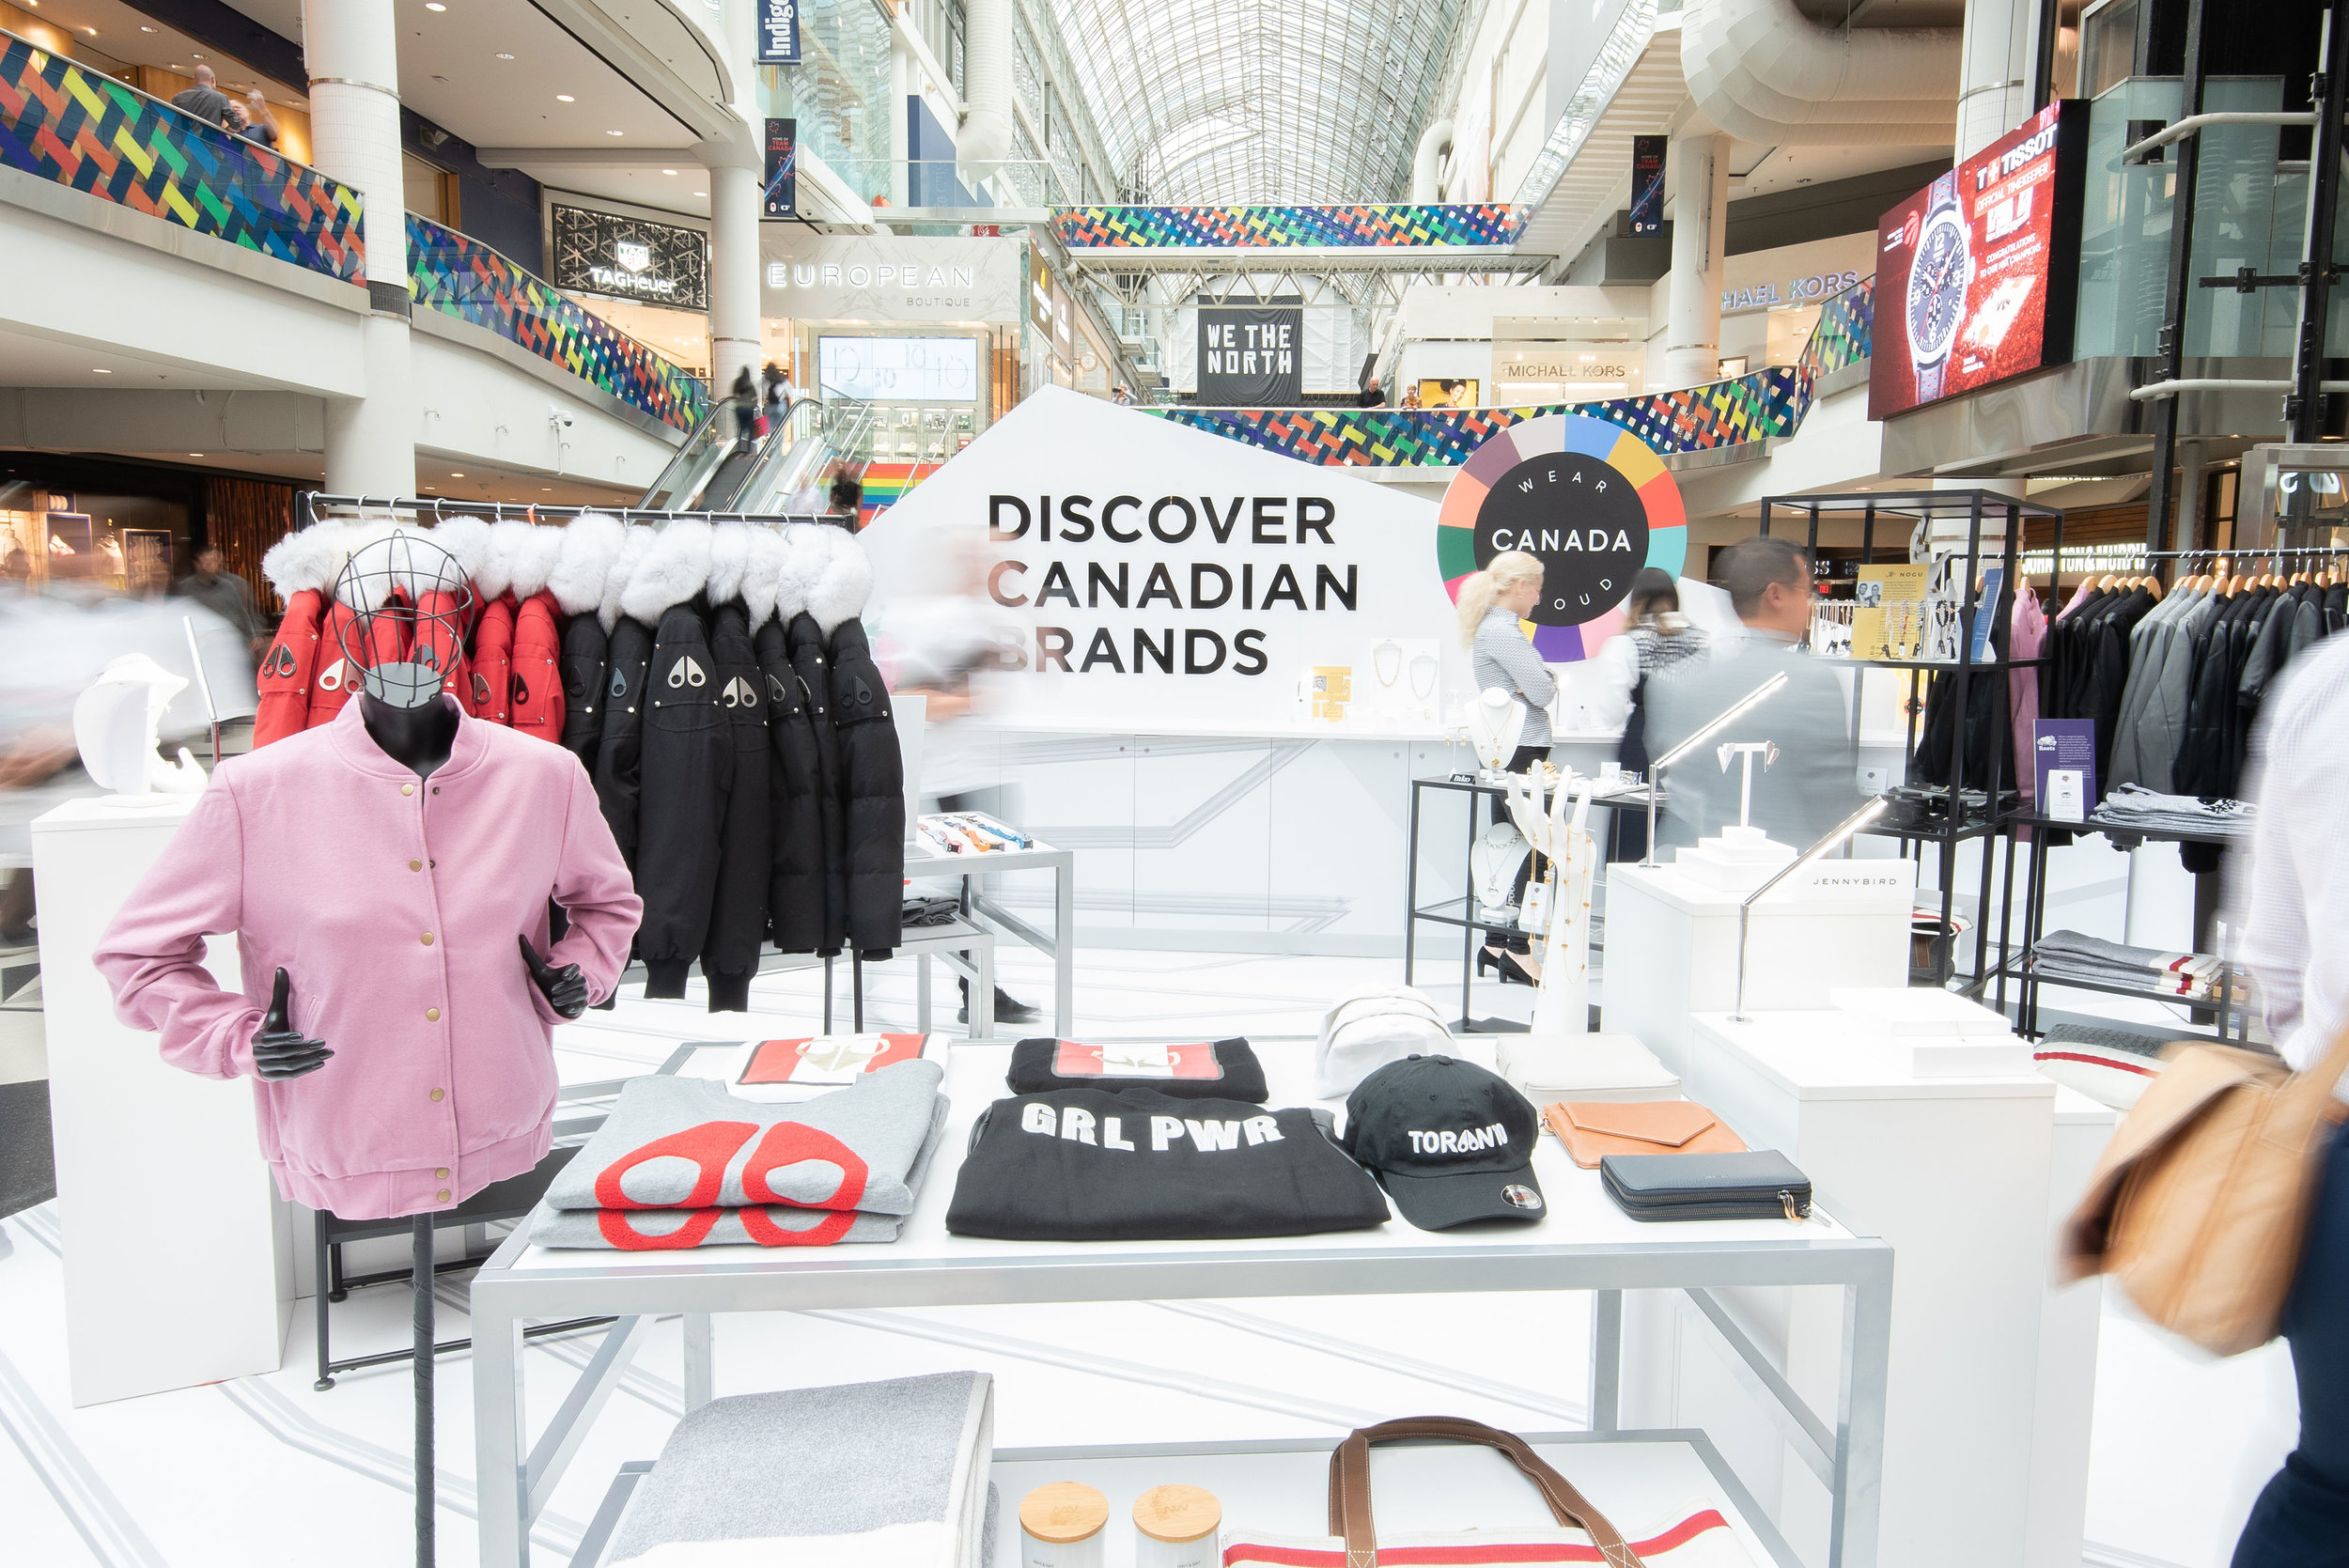 On June 24, Cadillac Fairview (CF), Ravel by CF (Ravel) and CAFA launch their partnership by hosting an exclusive Wear Canada Proud Canadian Designer Pop Up at CF Toronto Eaton Centre. PHOTO: CADILLAC FAIRVIEW